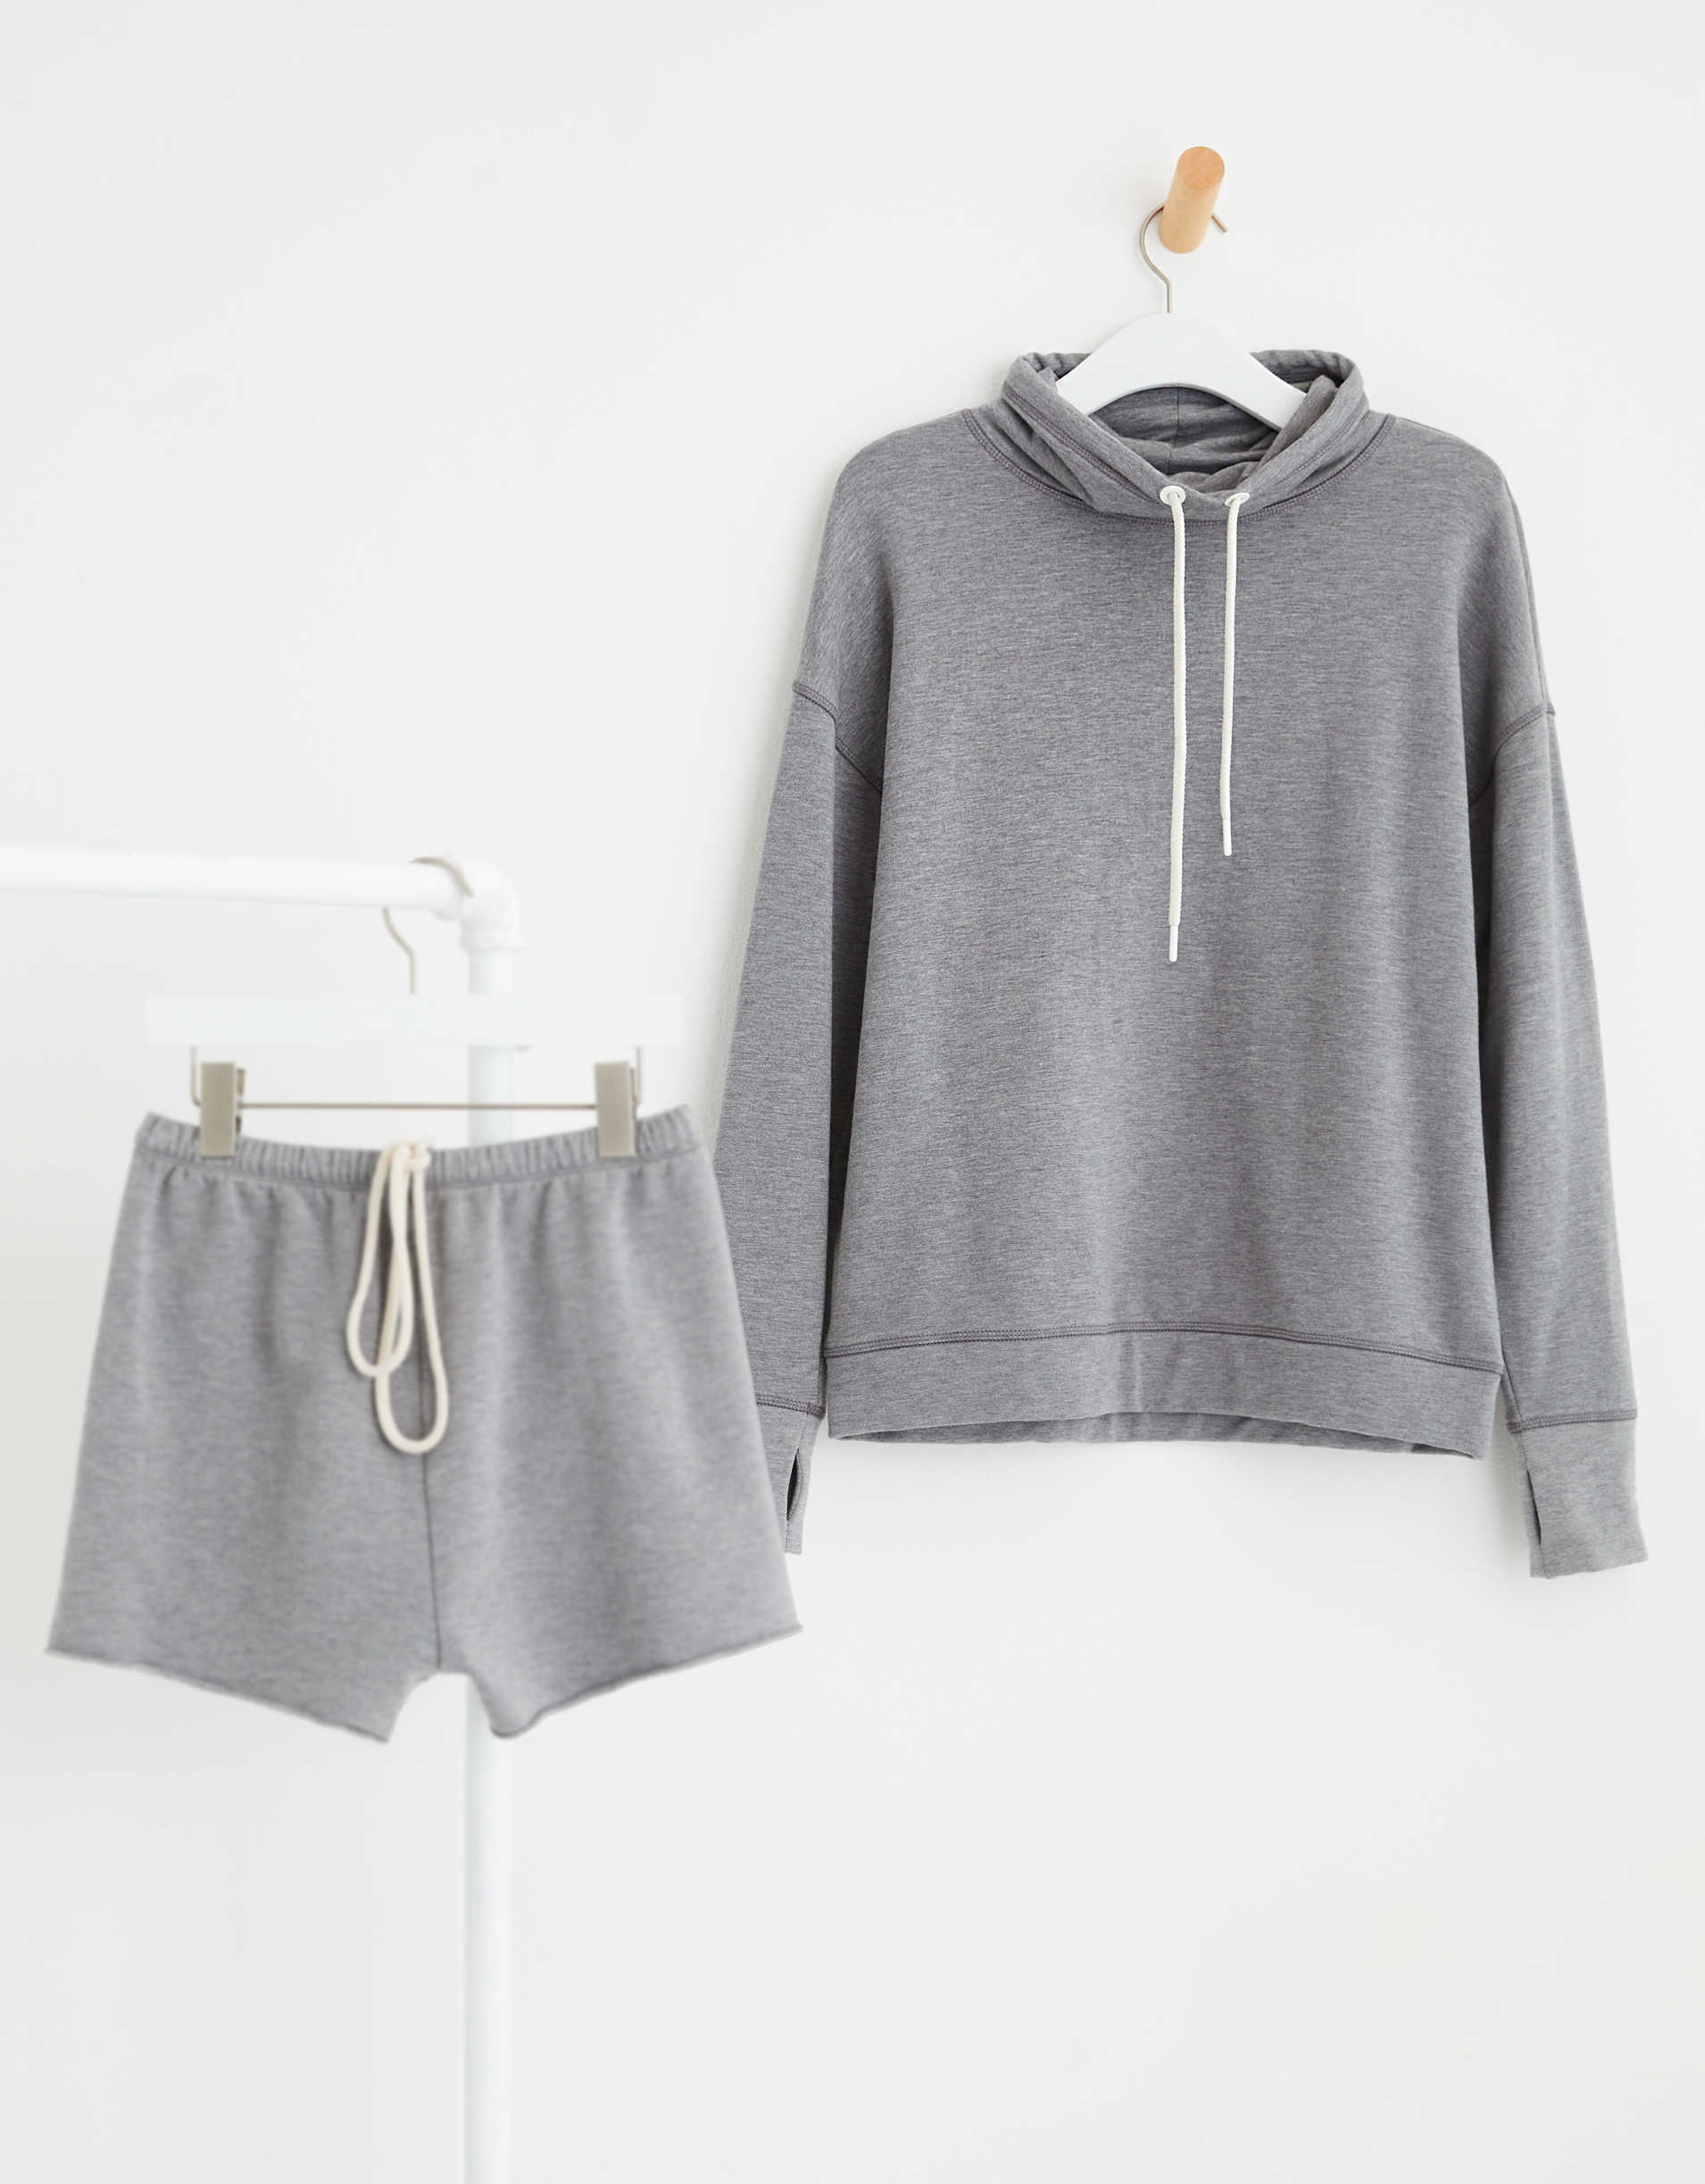 OFFLINE OTT Fleece Sweatshirt